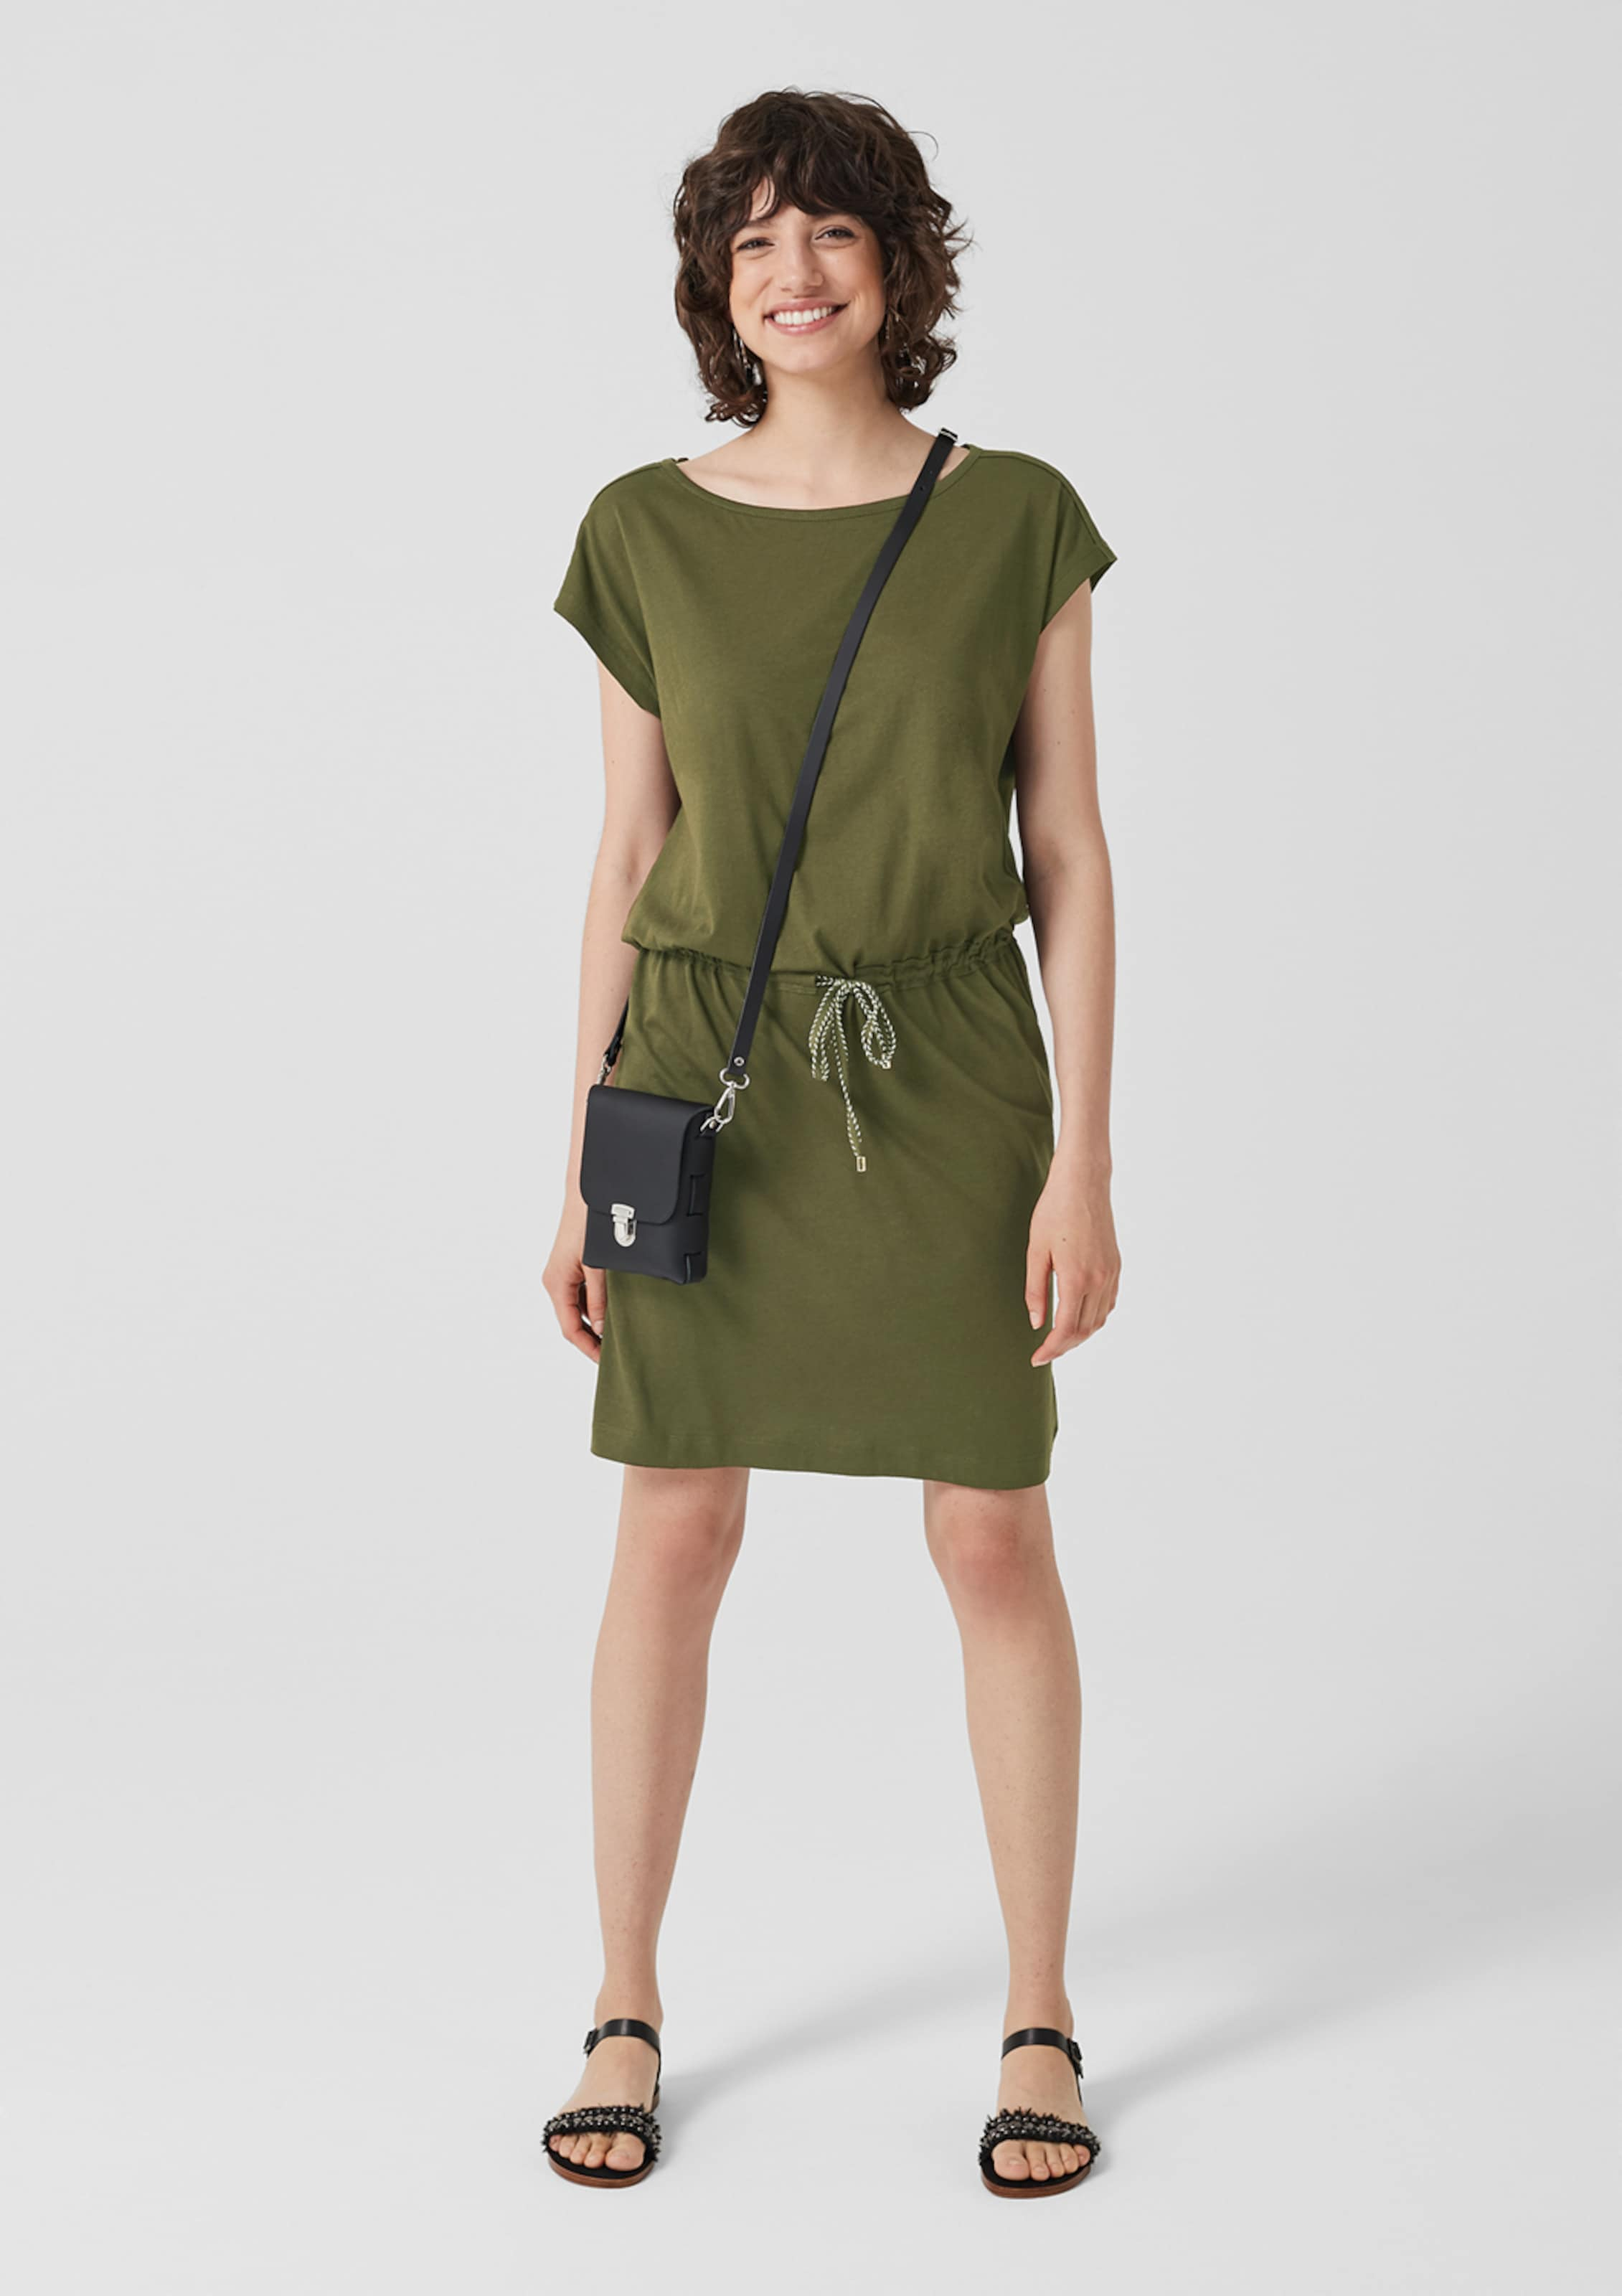 S oliver Red Kleid In Label Khaki bfgI6vy7Ym